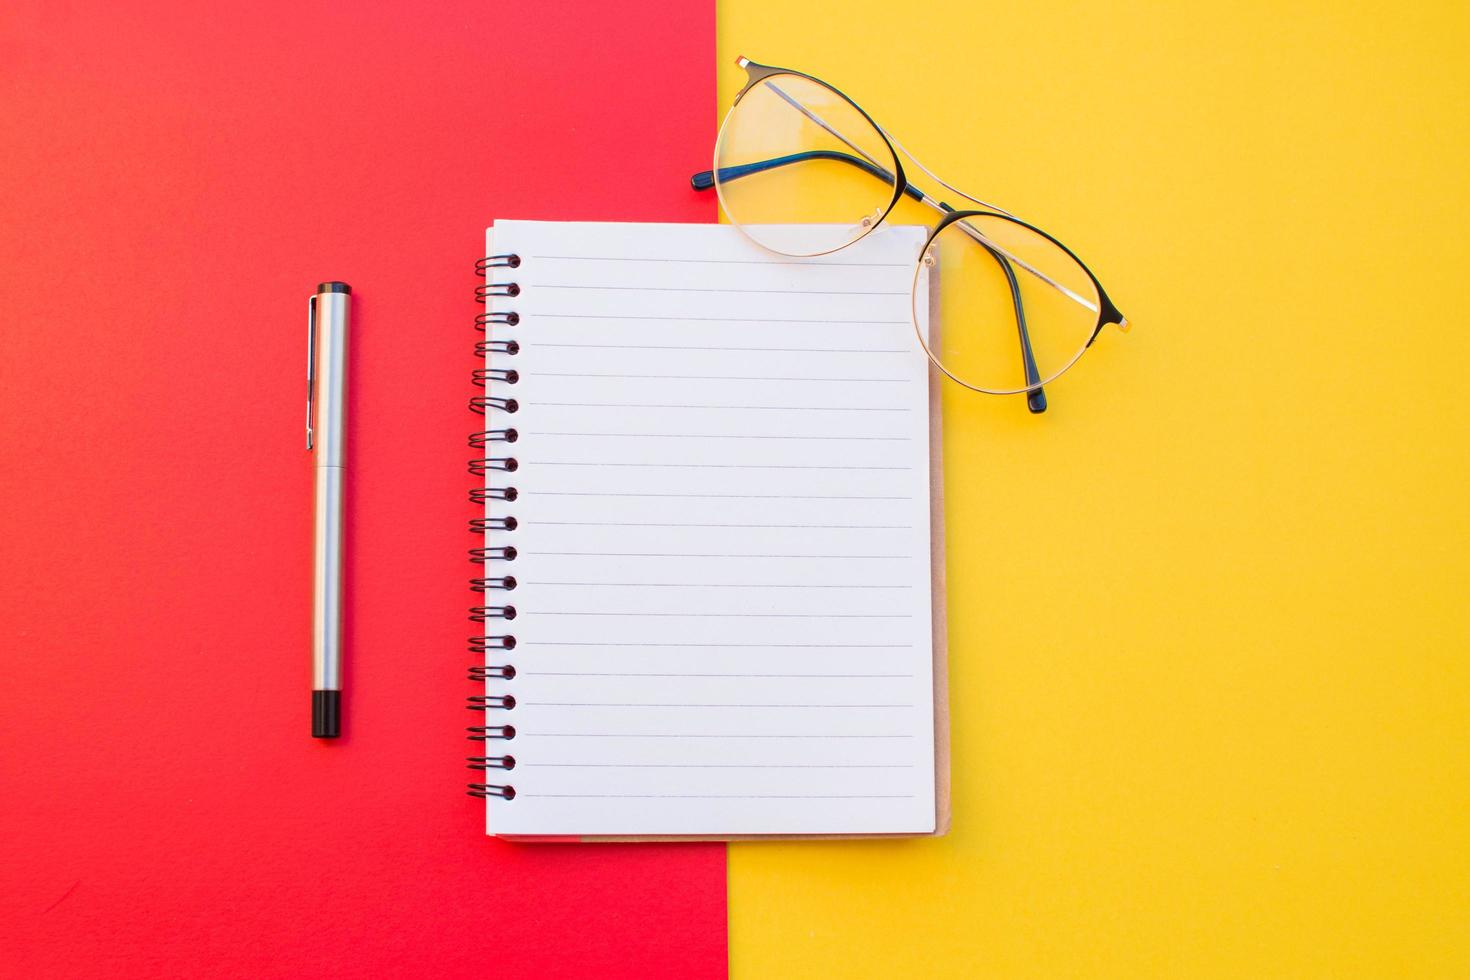 Notebook, glasses and pen on red and yellow background photo